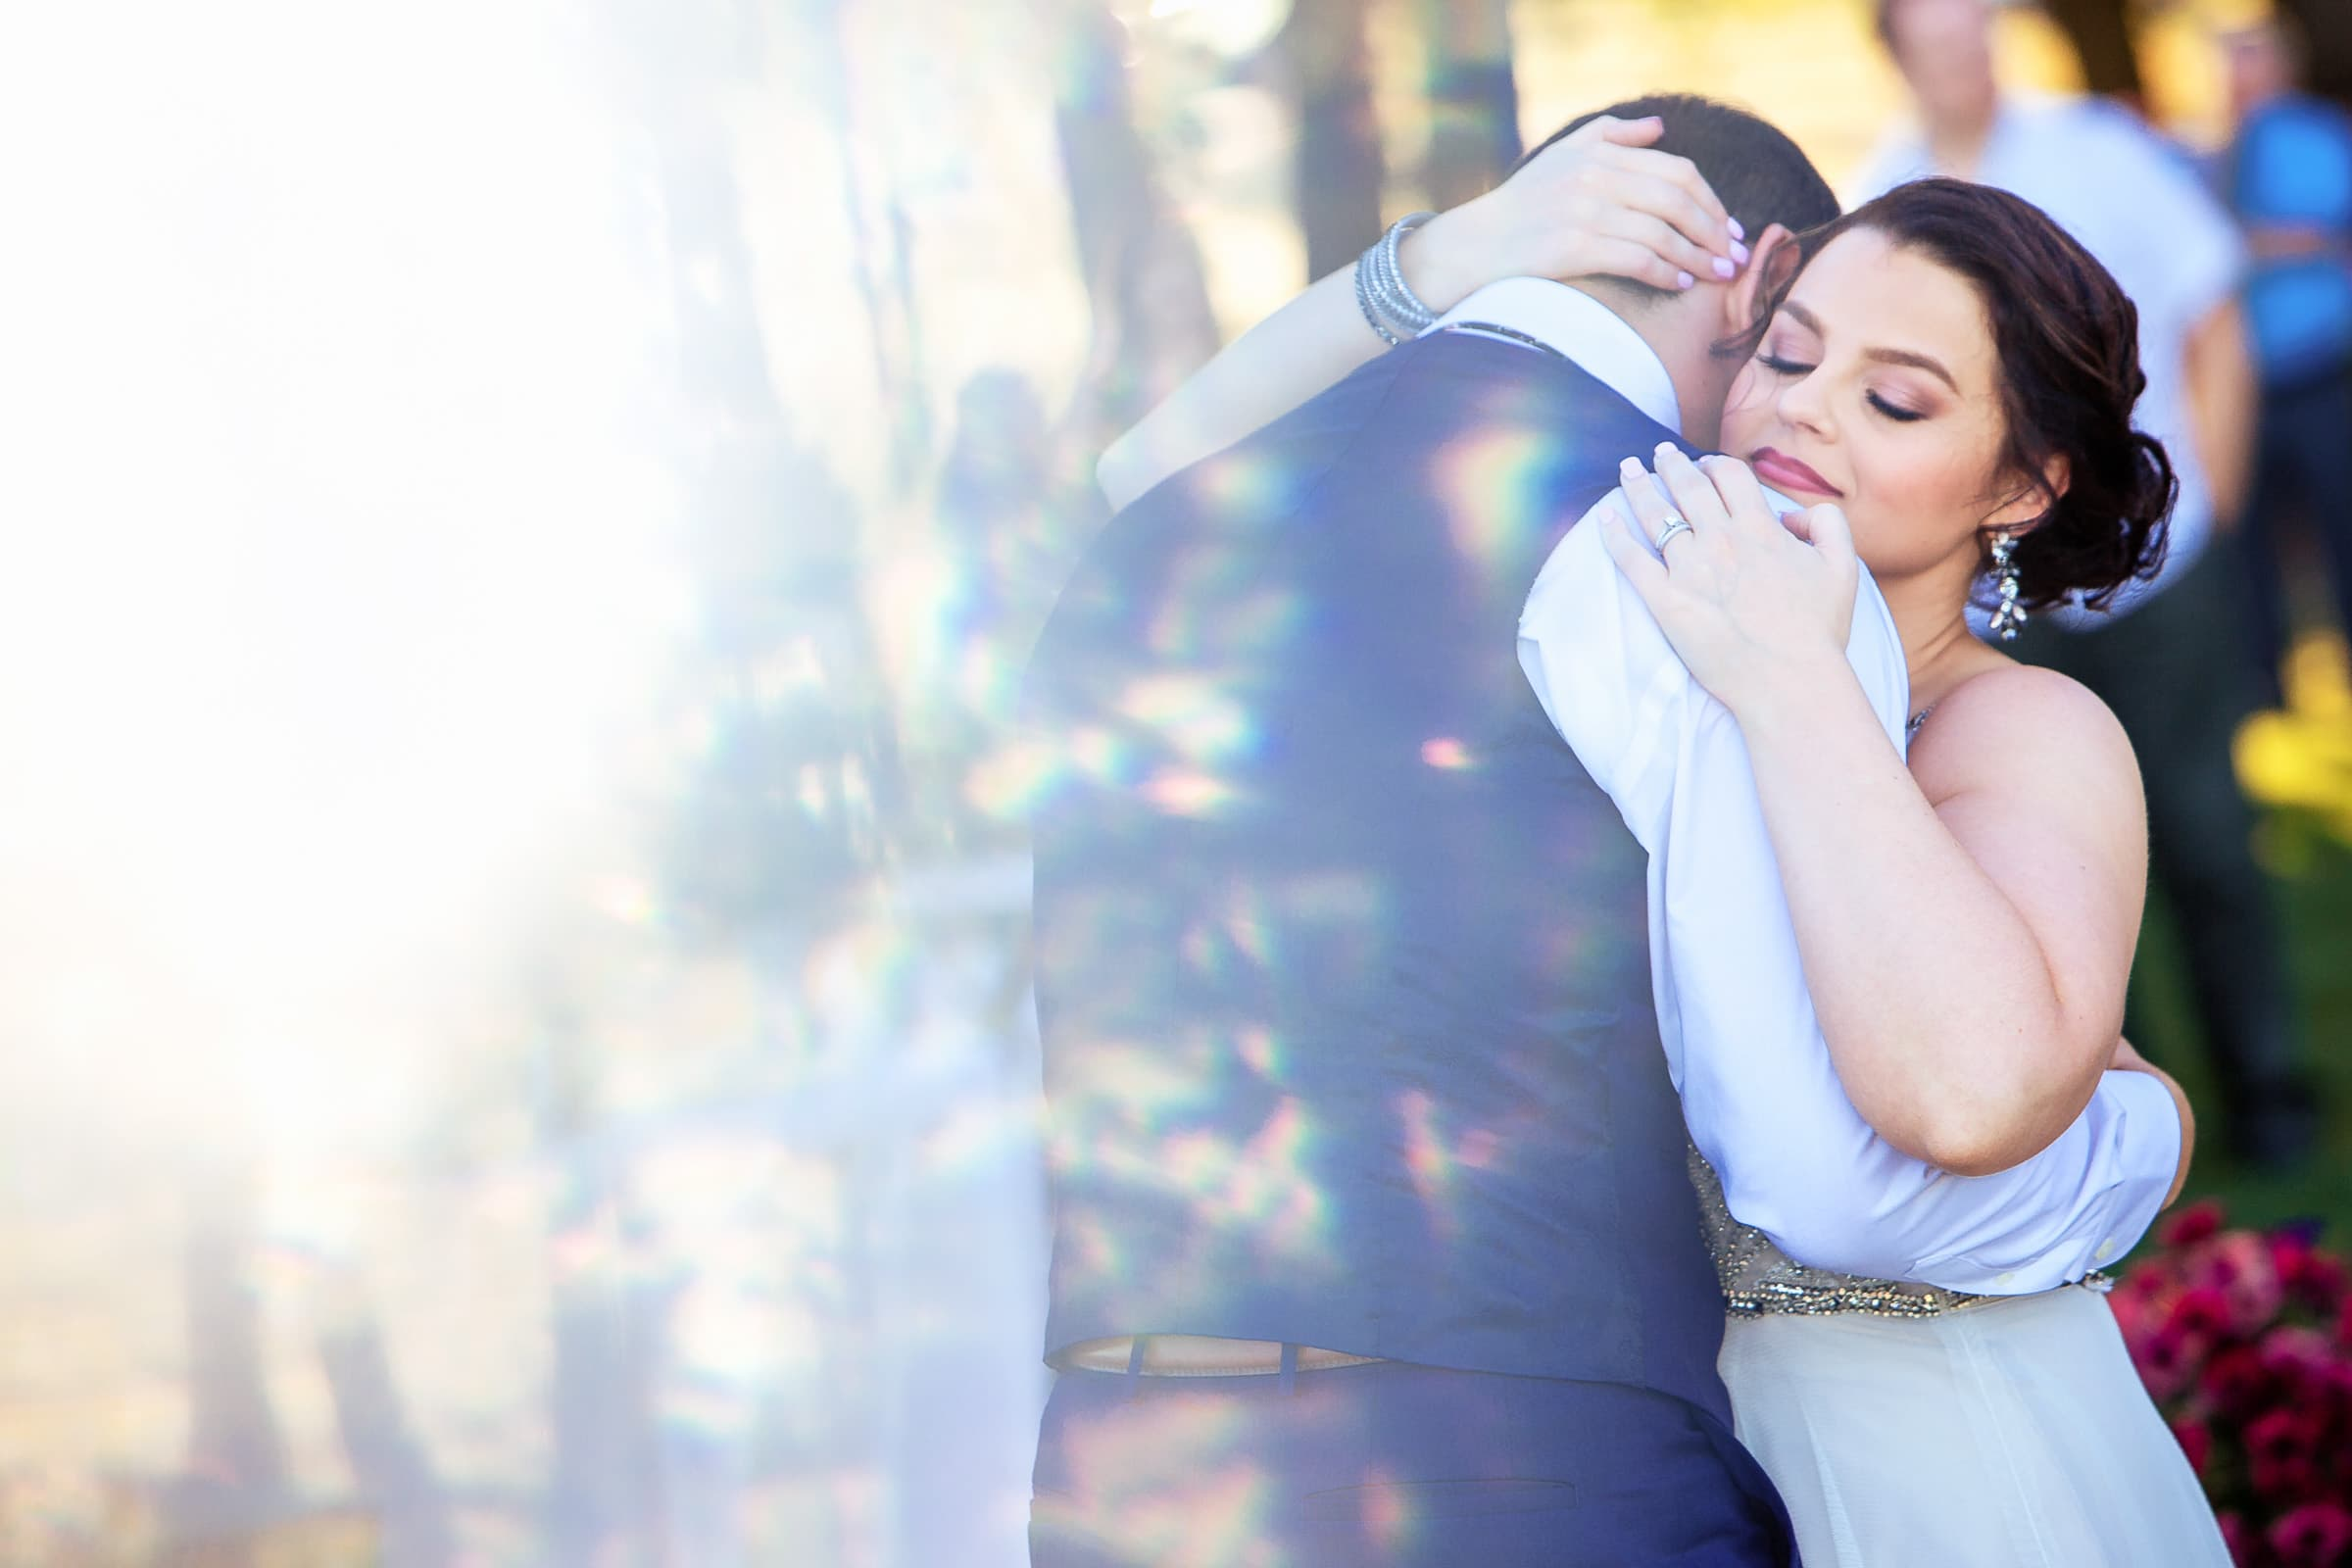 A beautiful bride embracing her groom during their first dance at their Postlewait's Country wedding located in the heart of the Willamette Valley between Portland and Salem near Aurora, Oregon